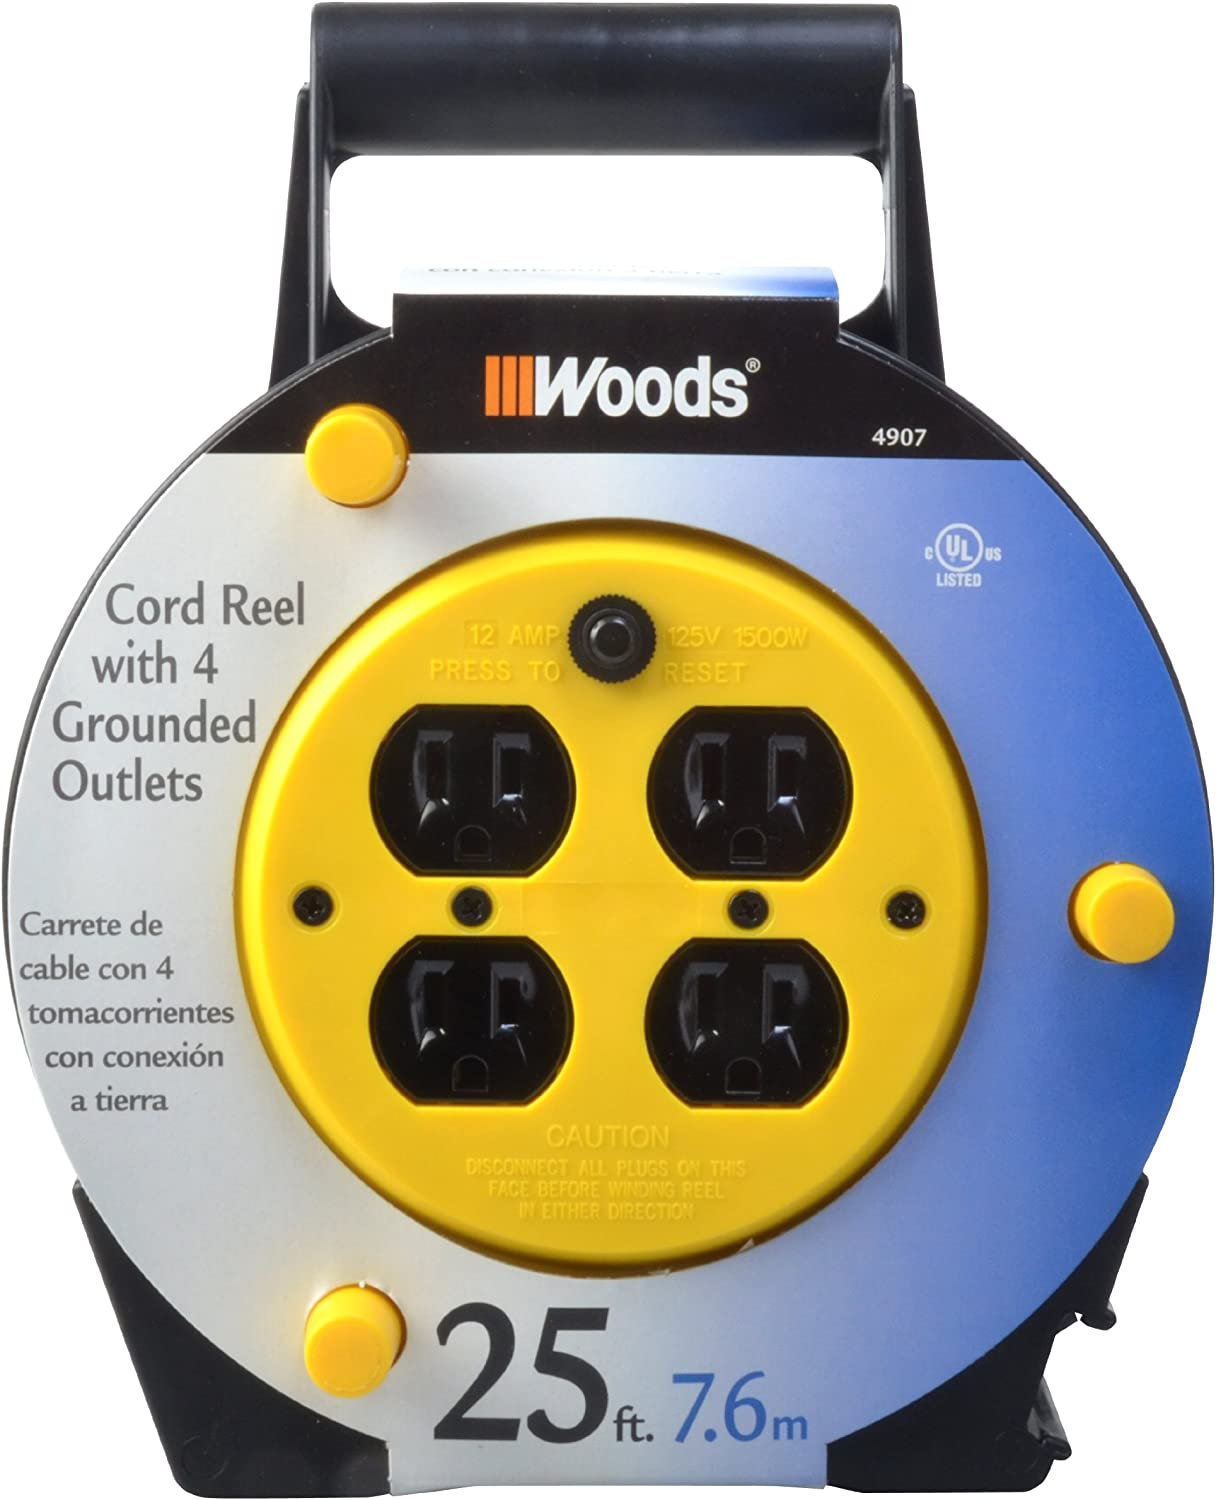 Woods 25' 4 Outlets Extension Cord Reel $17  Coupon